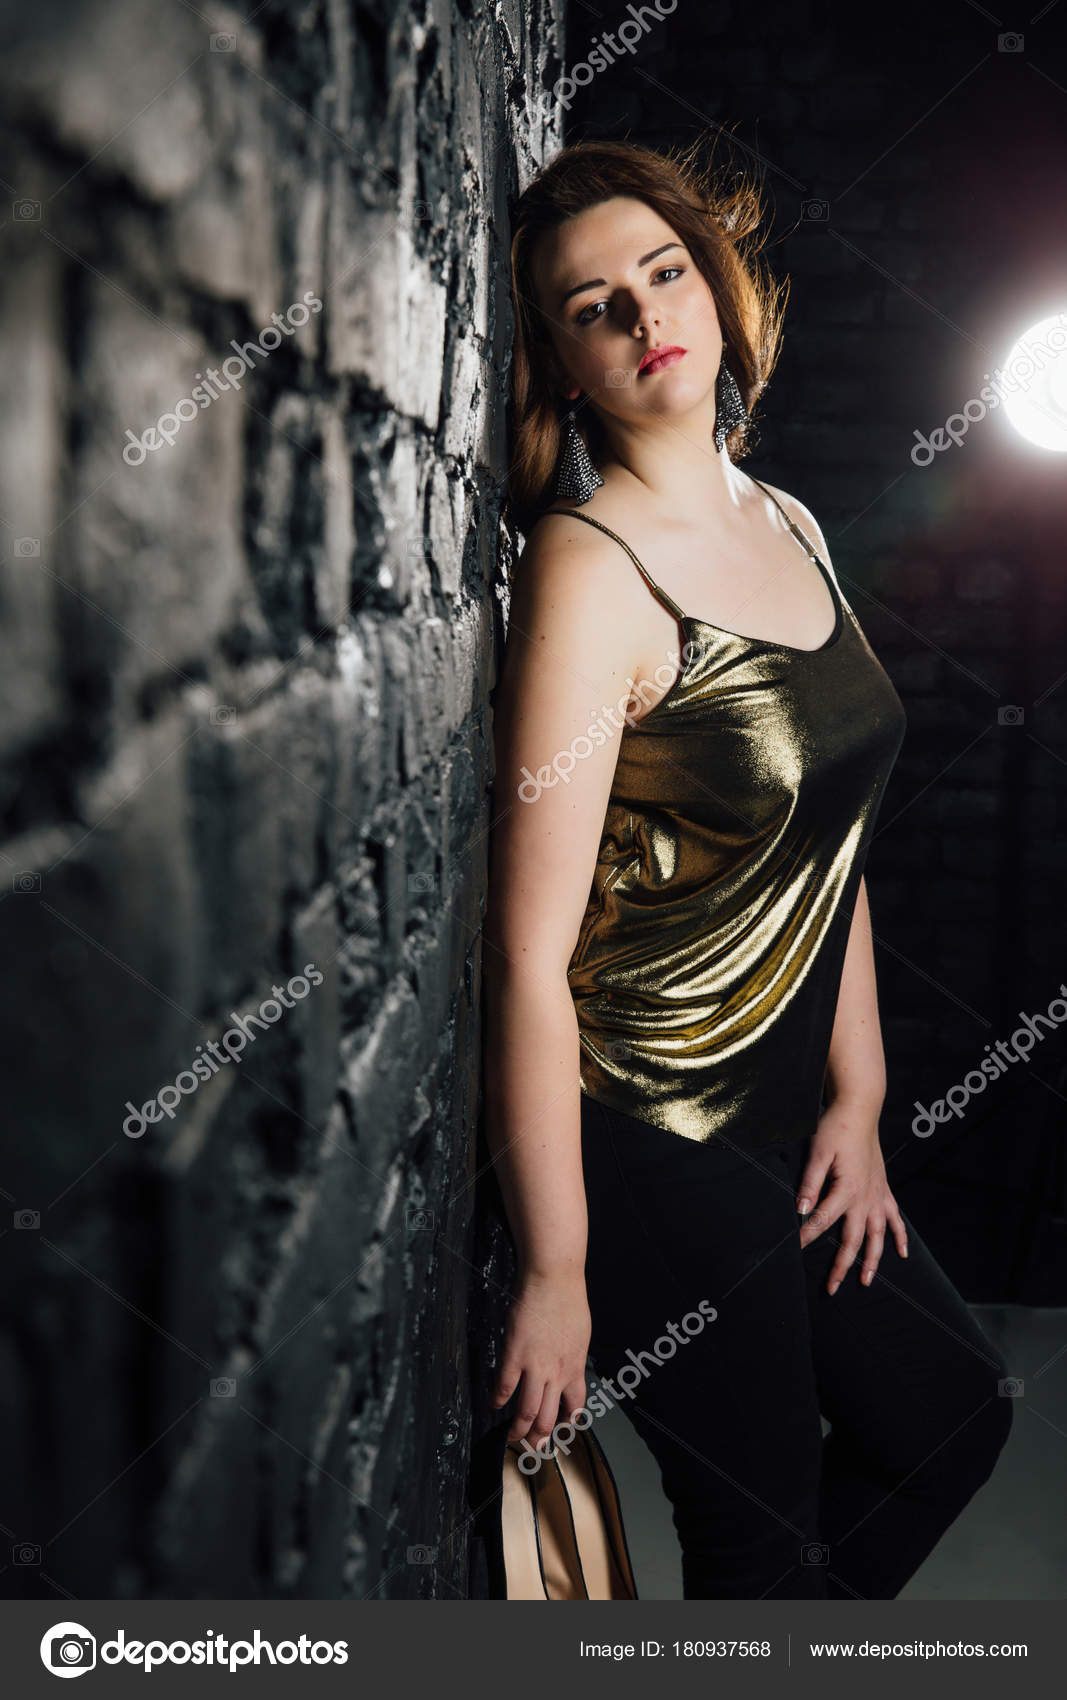 c408059322c2f Plus size model in a gold blouse and black jeans on a brick loft background.